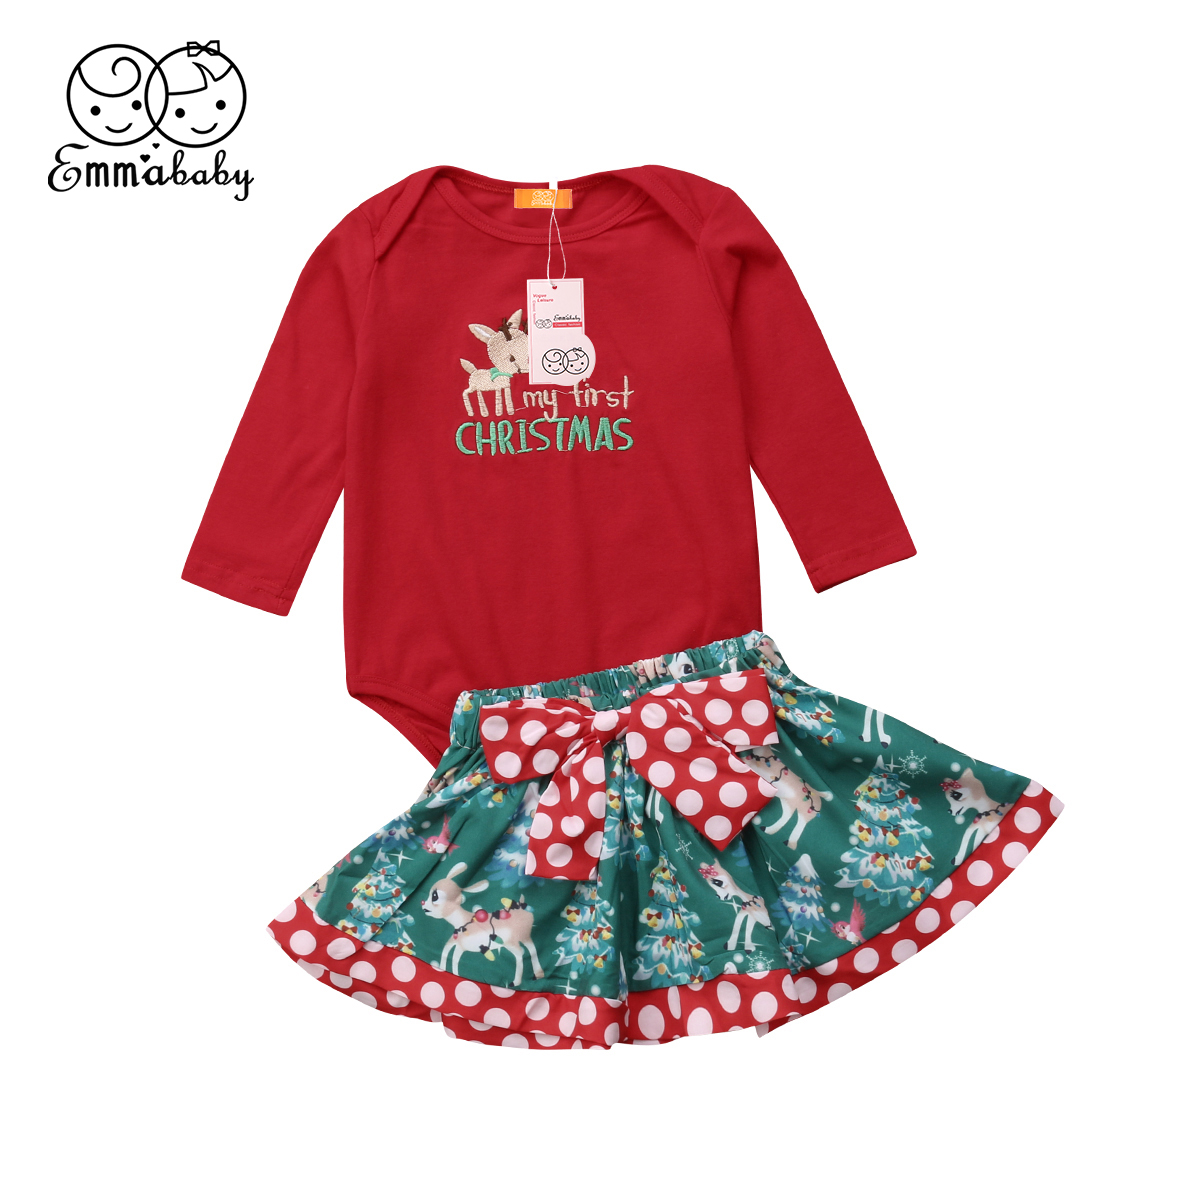 74ebe9babc9 Detail Feedback Questions about US Newborn Baby Girls Christmas Romper Tops  Tutu Skirt Bow Dress Outfits Set on Aliexpress.com